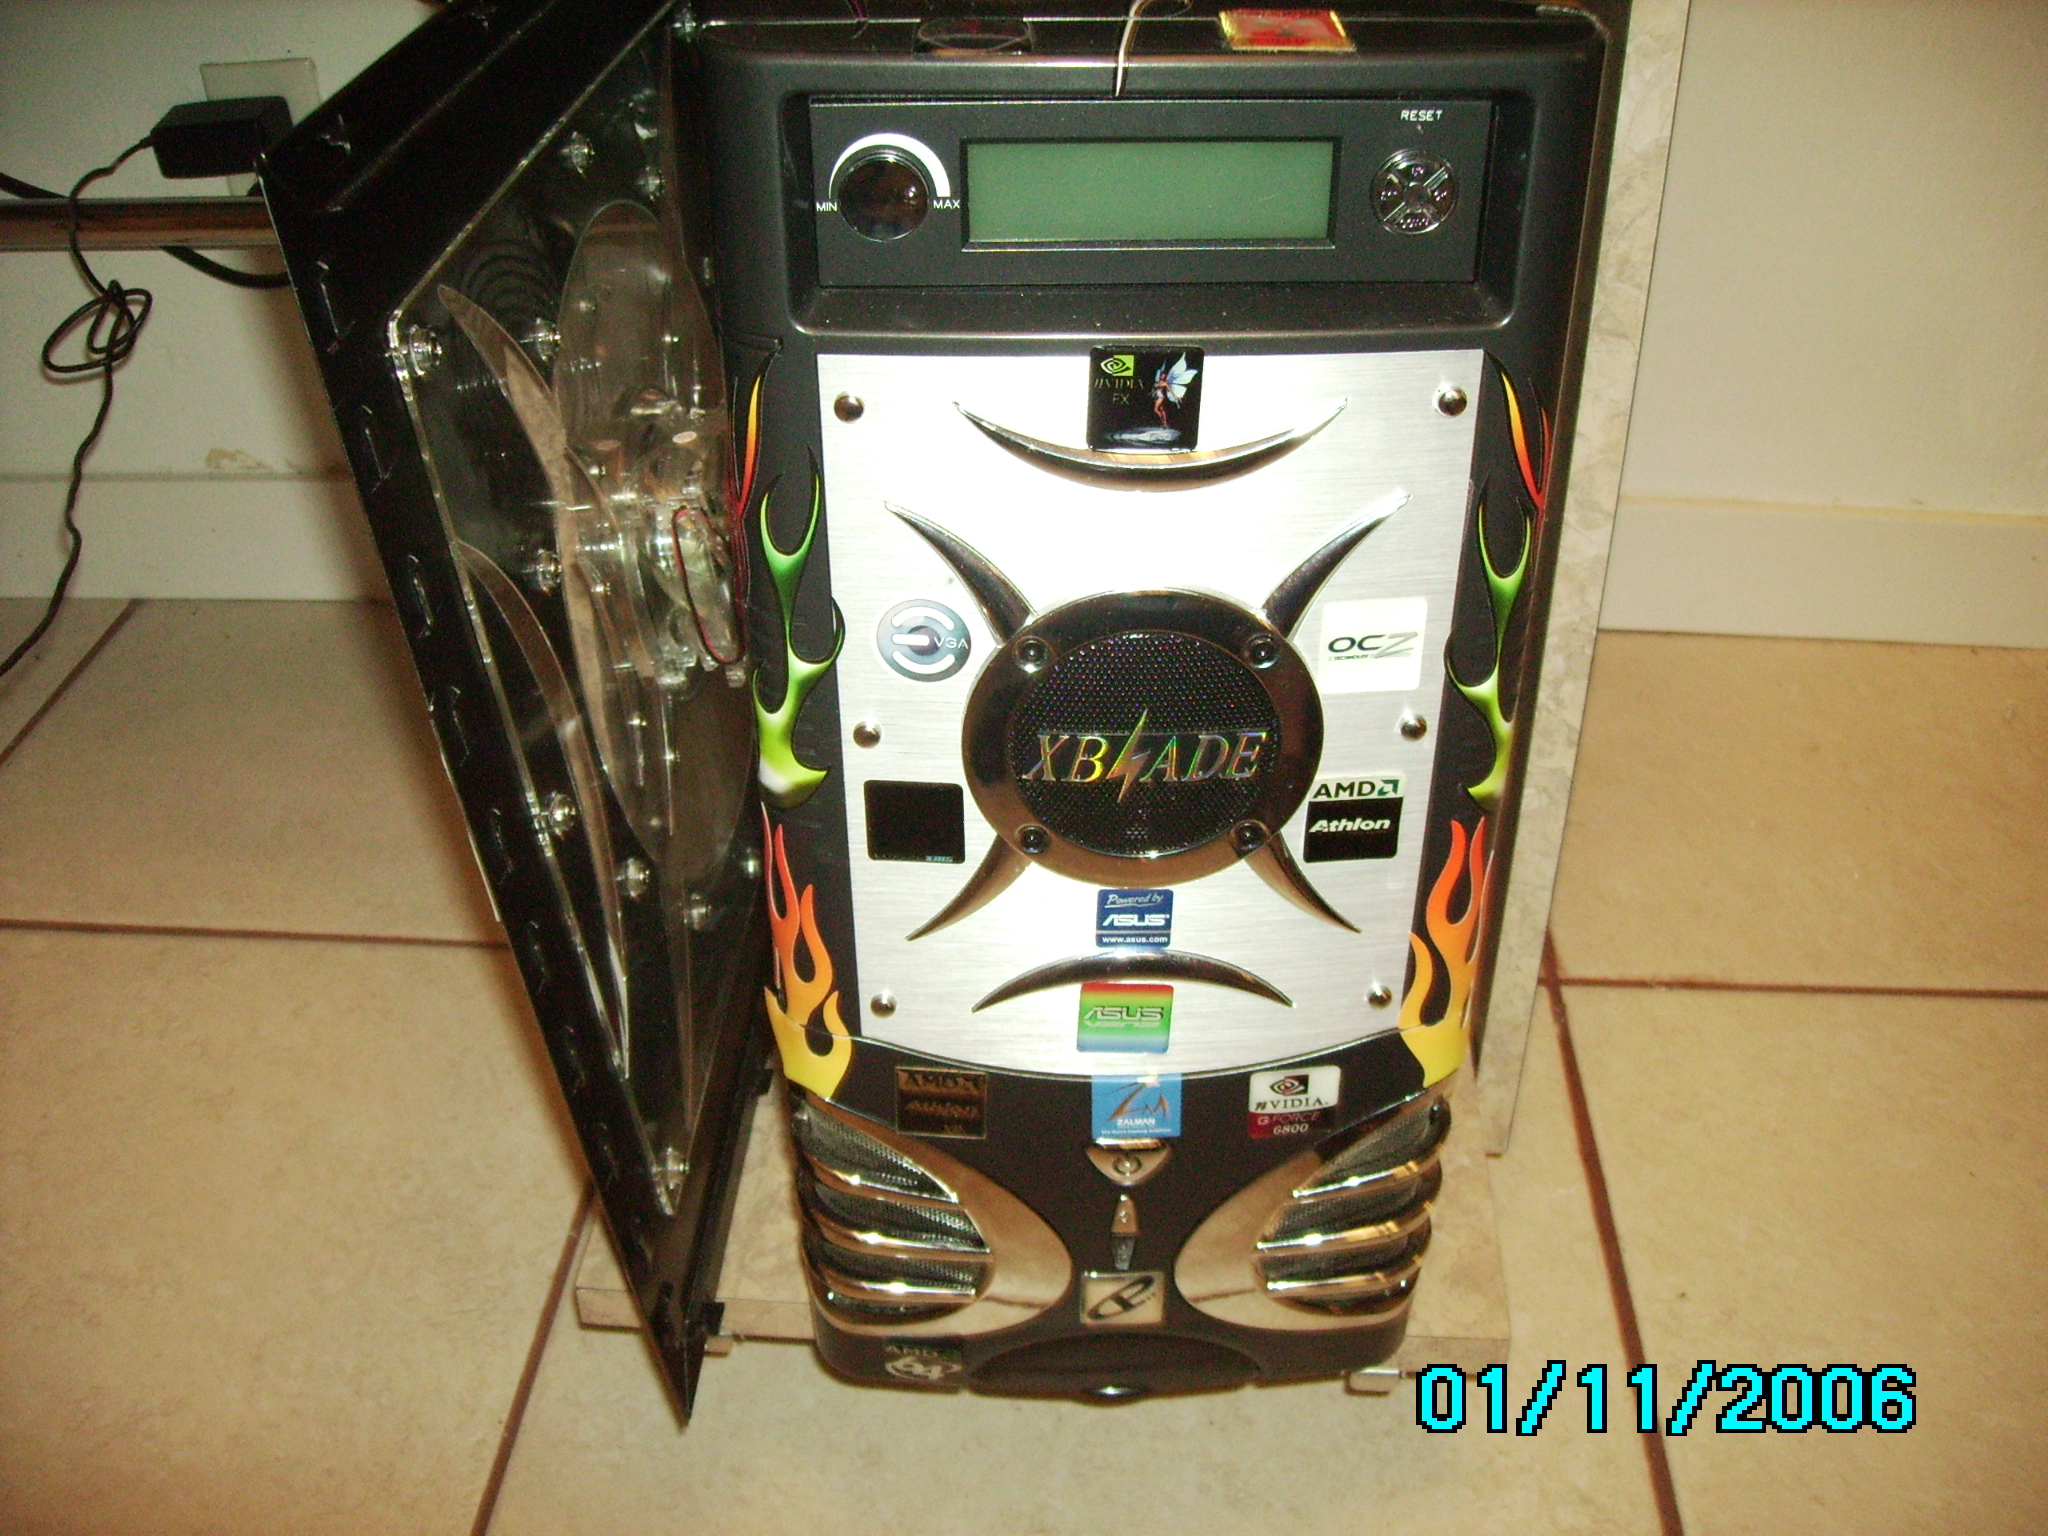 Front of PC